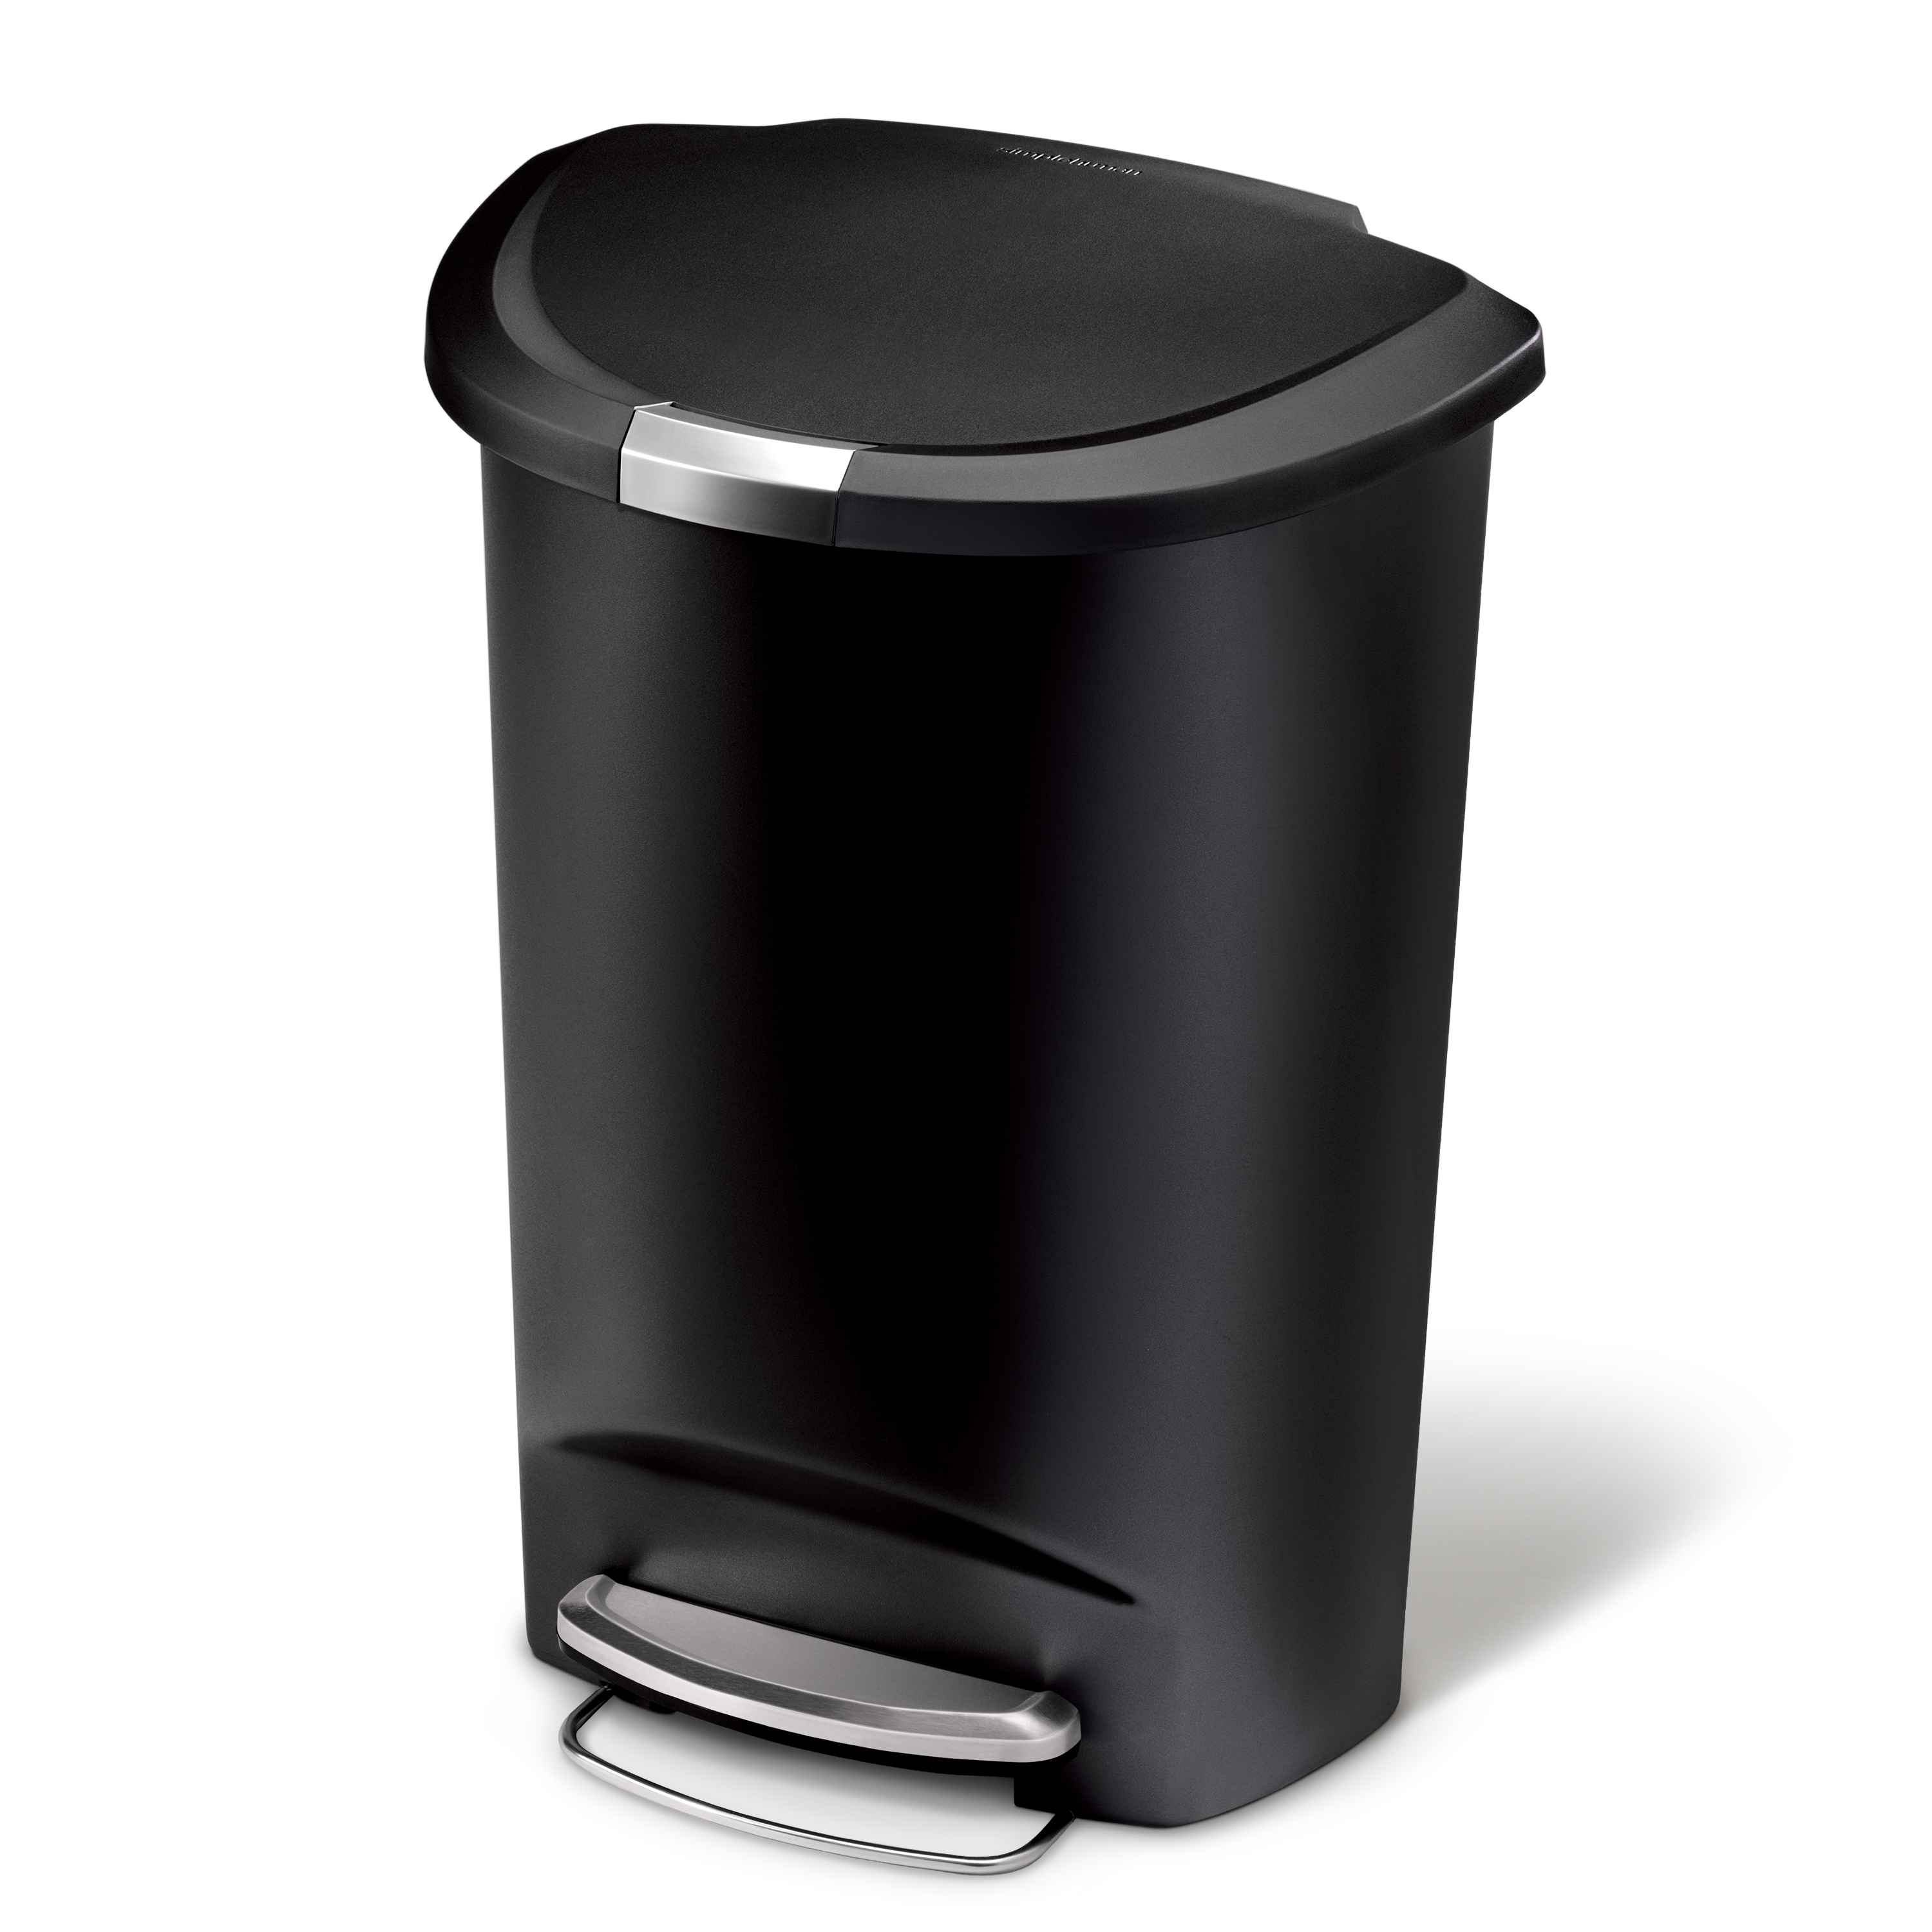 simplehuman 50 litre / 13 gallon semi-round plastic step trash can, black